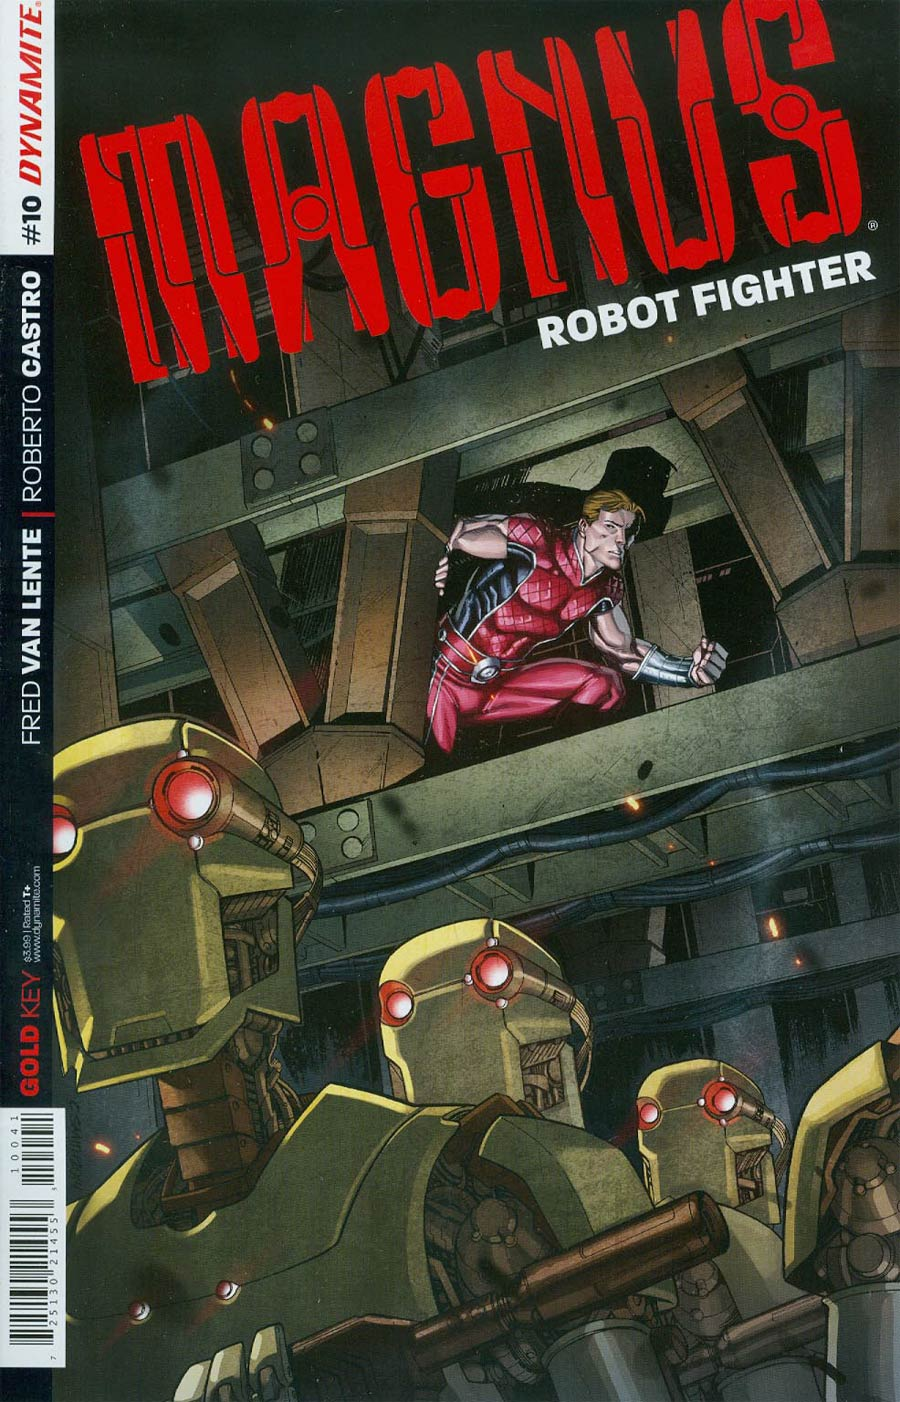 Magnus Robot Fighter Vol 4 #10 Cover B Variant Cory Smith Subscription Cover